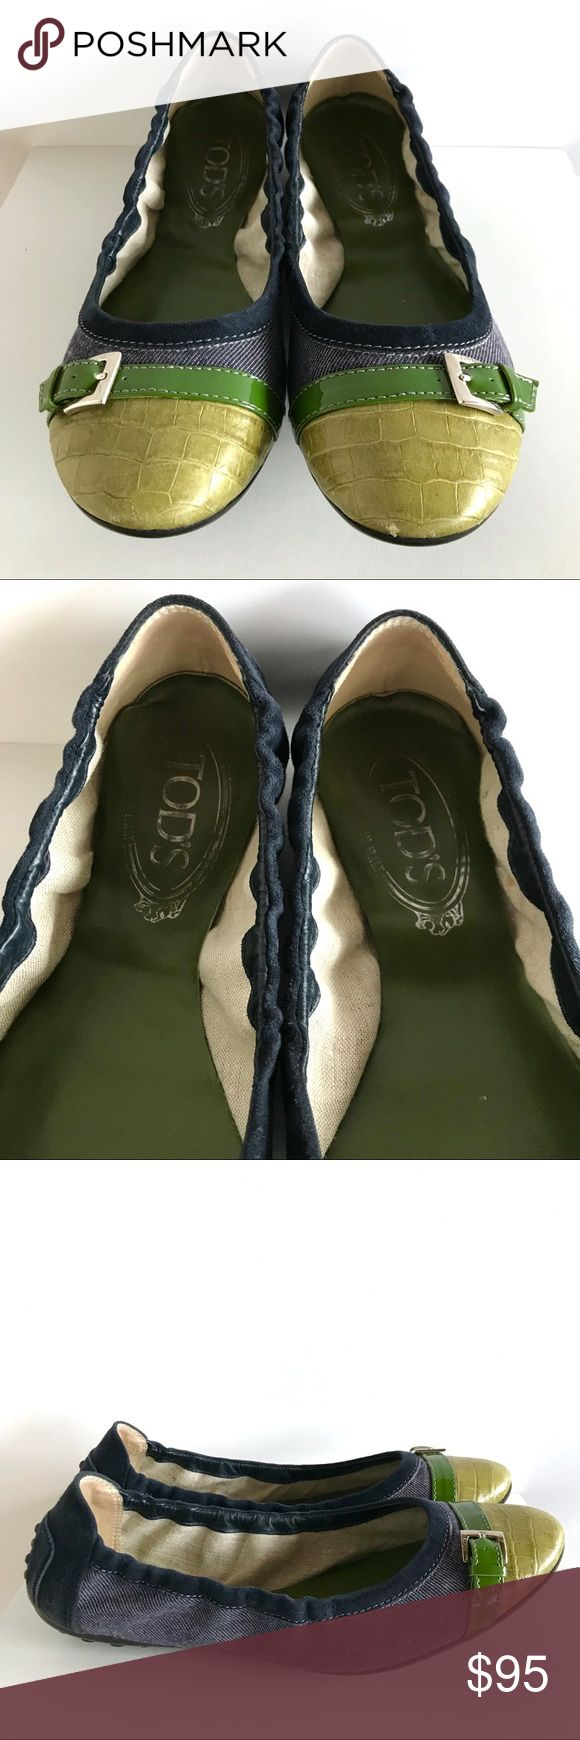 🆕 NWOT Tod's Color Block Ballet Flats 🆕 NWOT Tod's Color Block Ballet Flats.  Size 7. Lime colored embossed leather toes, dark green patent leather stripe (with stamped buckle), denim body & navy suede piping and rear of heel.  Brand new (bottoms have no signs of wear), but toe of left toe has a small nick and back of heels shoe some rubbing on the suede (see photos).  Inside of left shoe has a small stain (possibly glue) on inside lining (see photos).  In otherwise excellent condition…